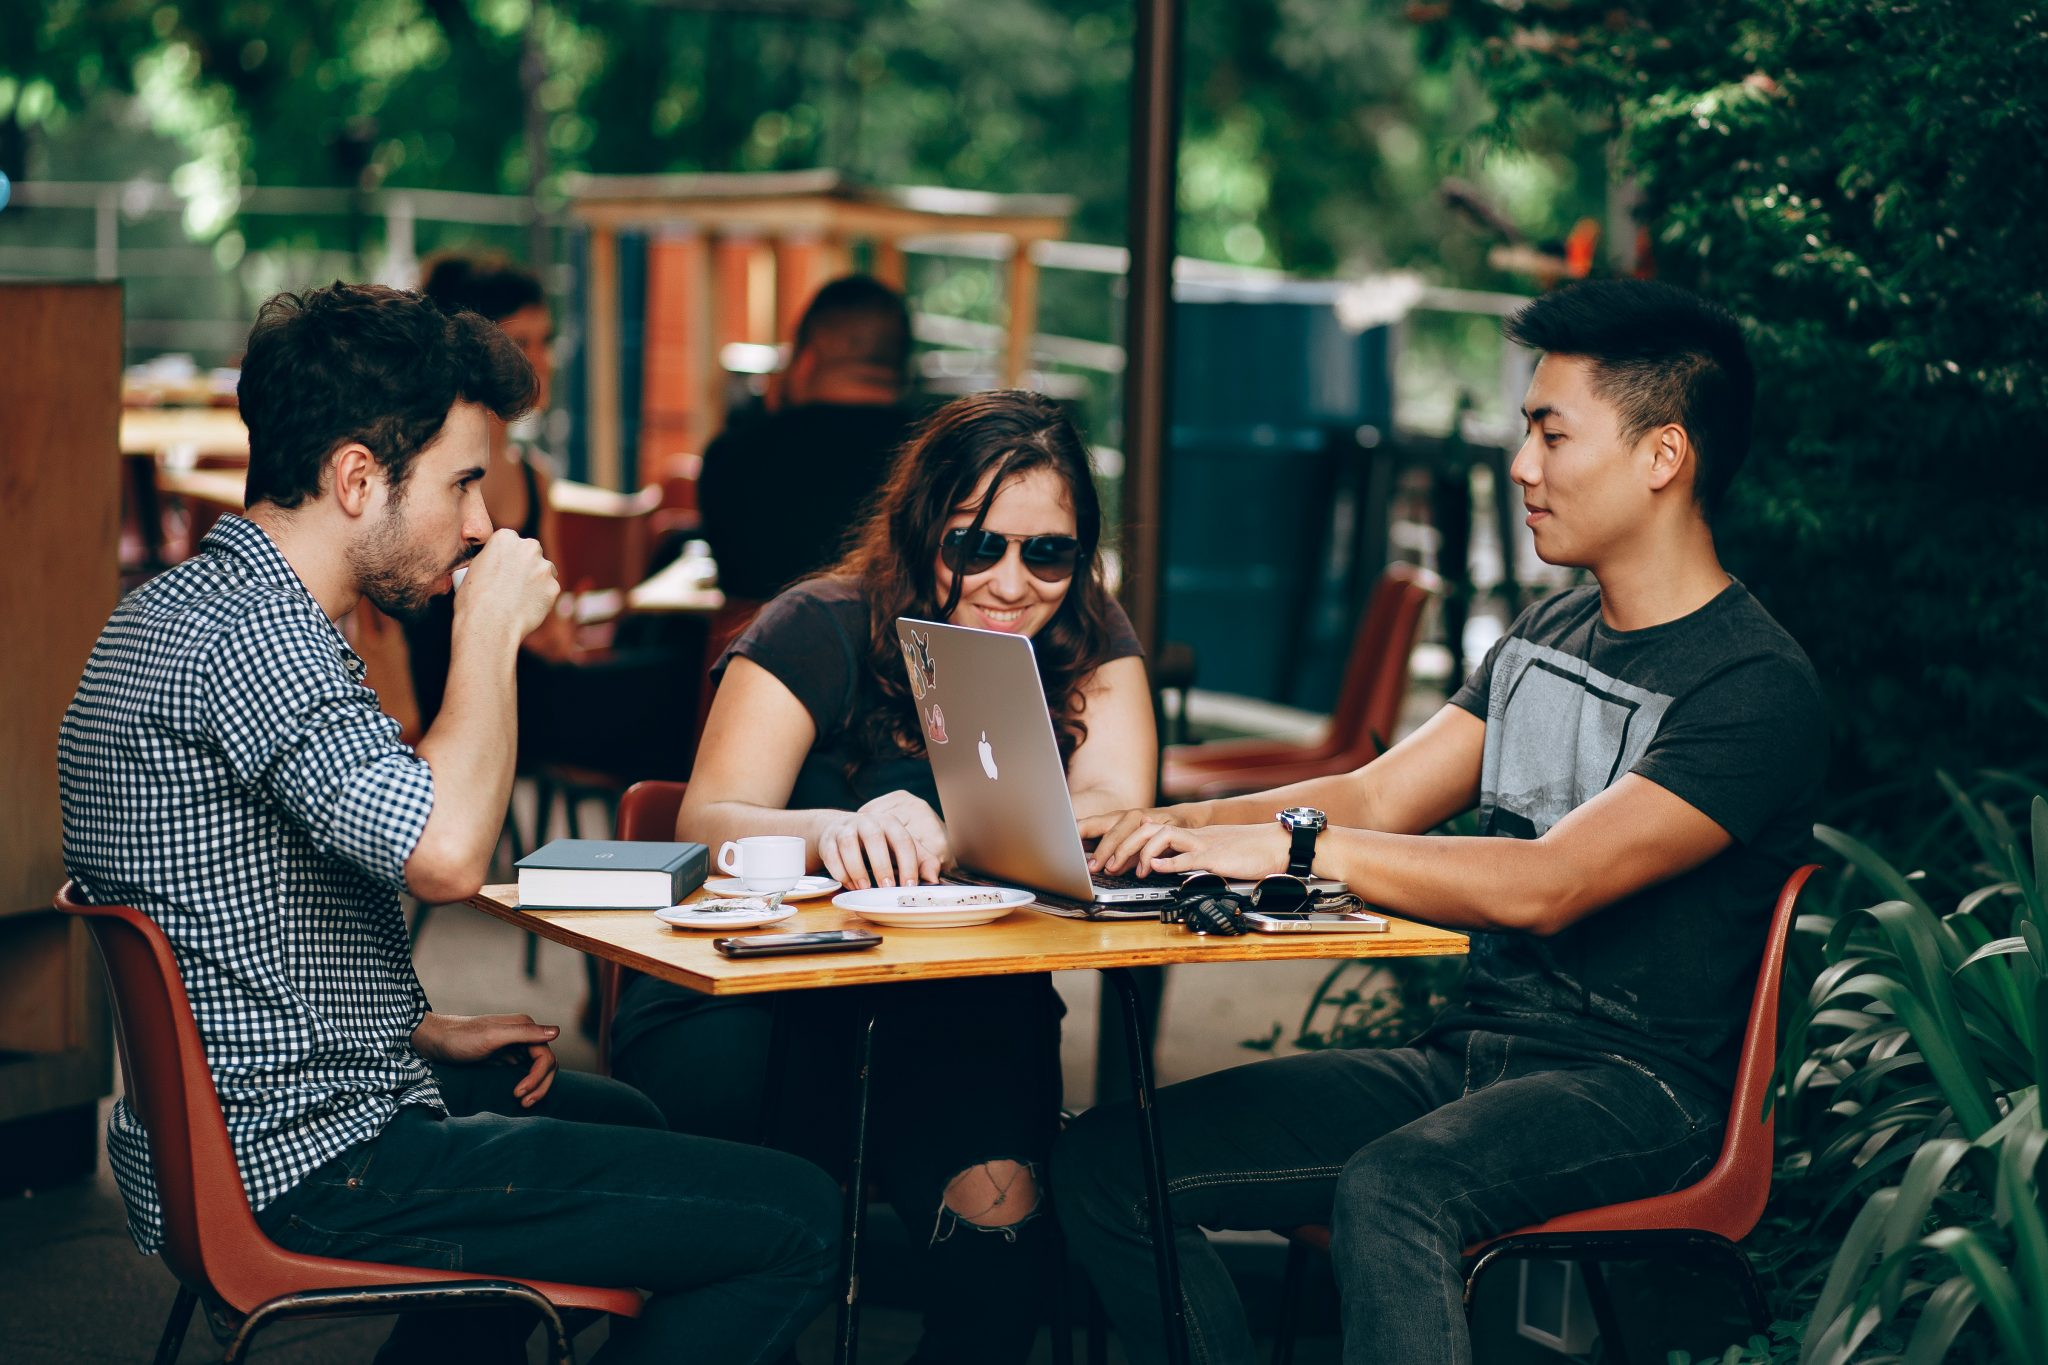 Finance Tips for Millennials For a Stable Financial Future